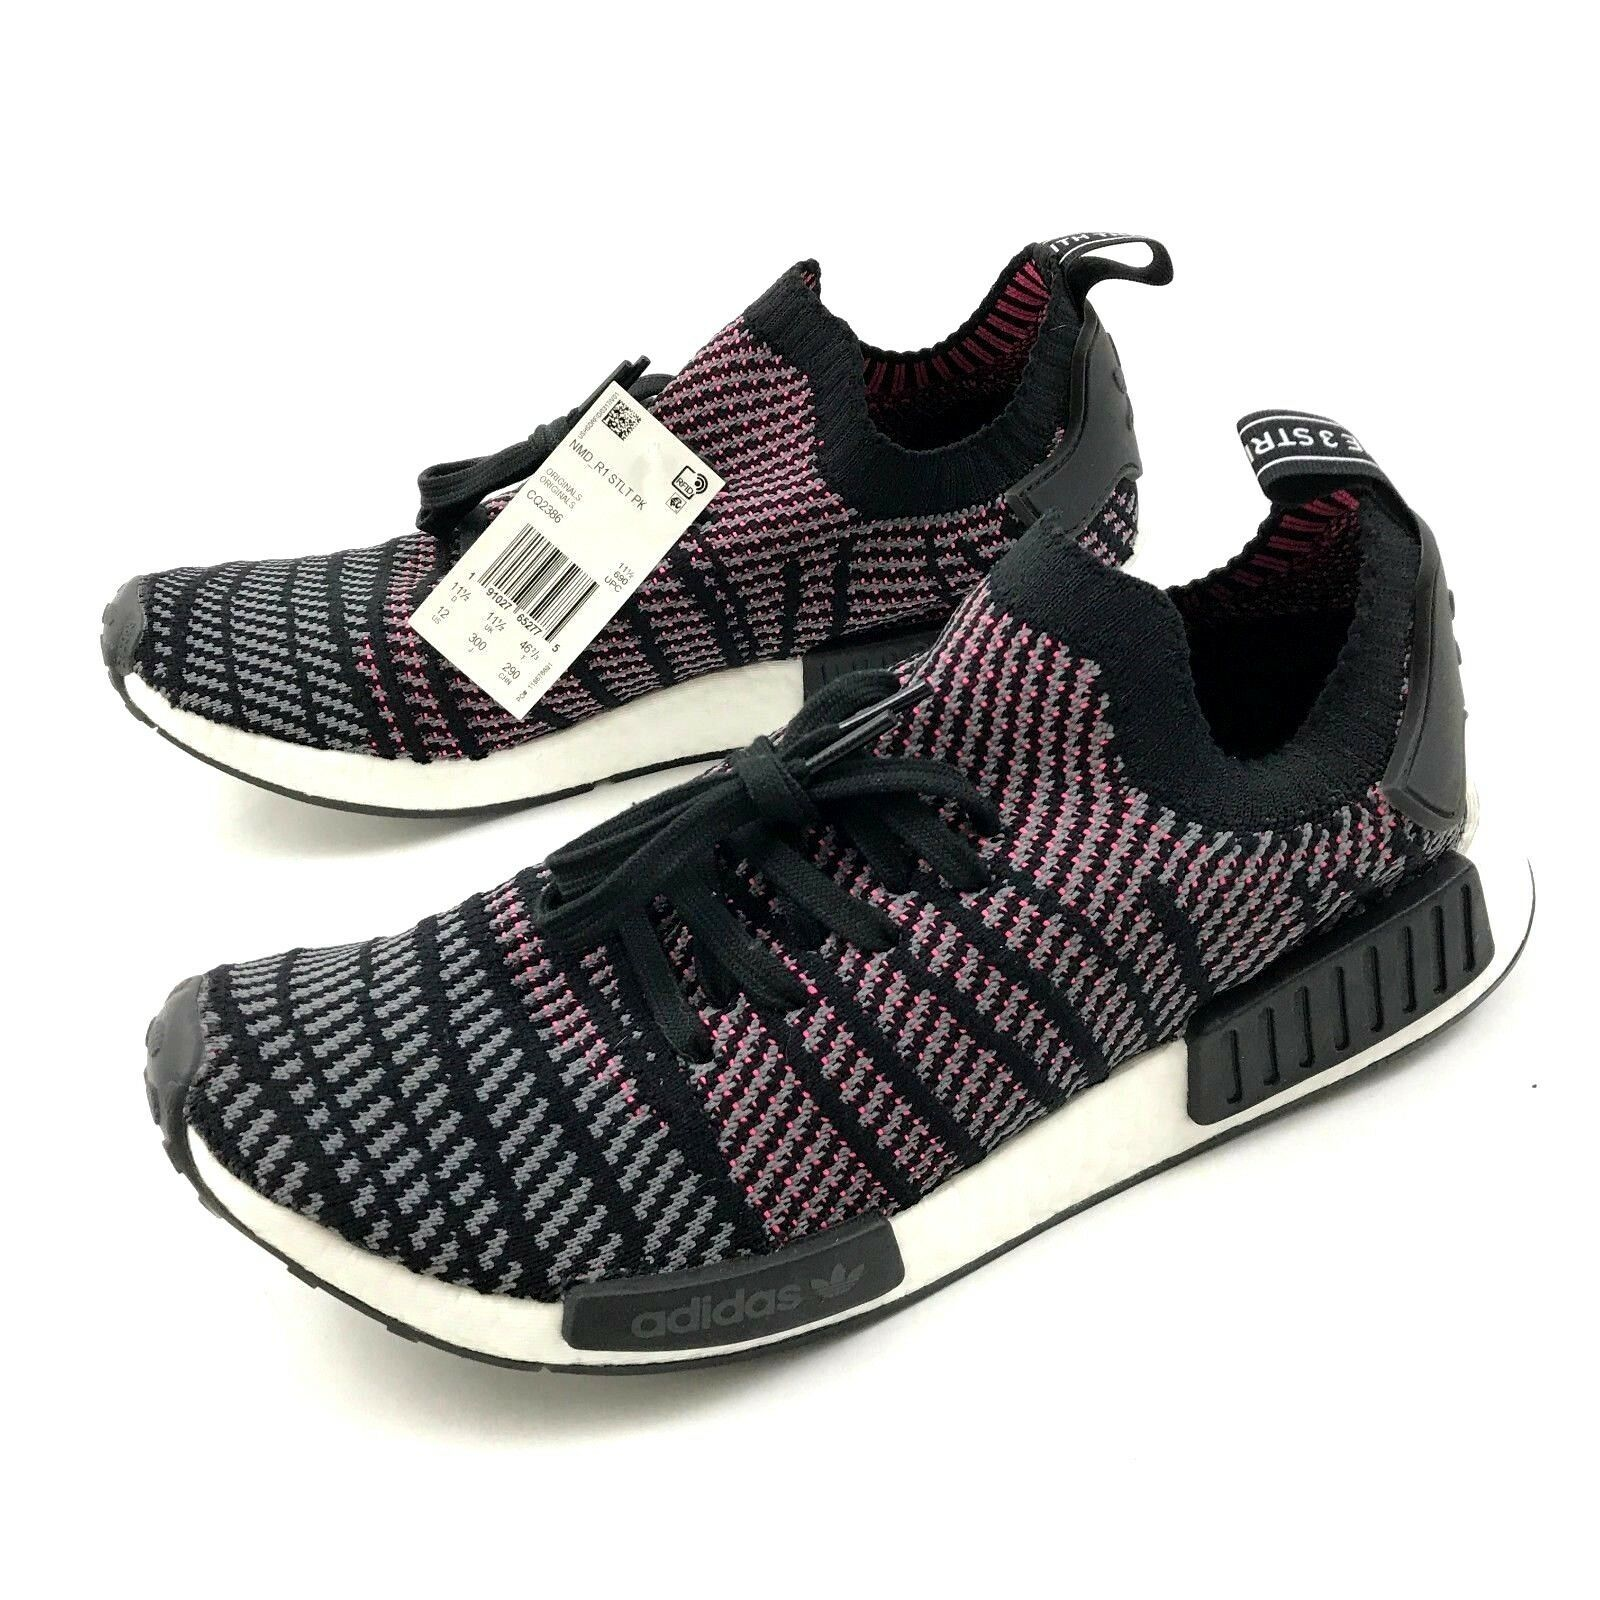 736045b21c25 57. 57. Previous. Adidas BOOST NMD R1 Shoes Mens Size 12 Low Top Lace Up  Primeknit Sneaker A